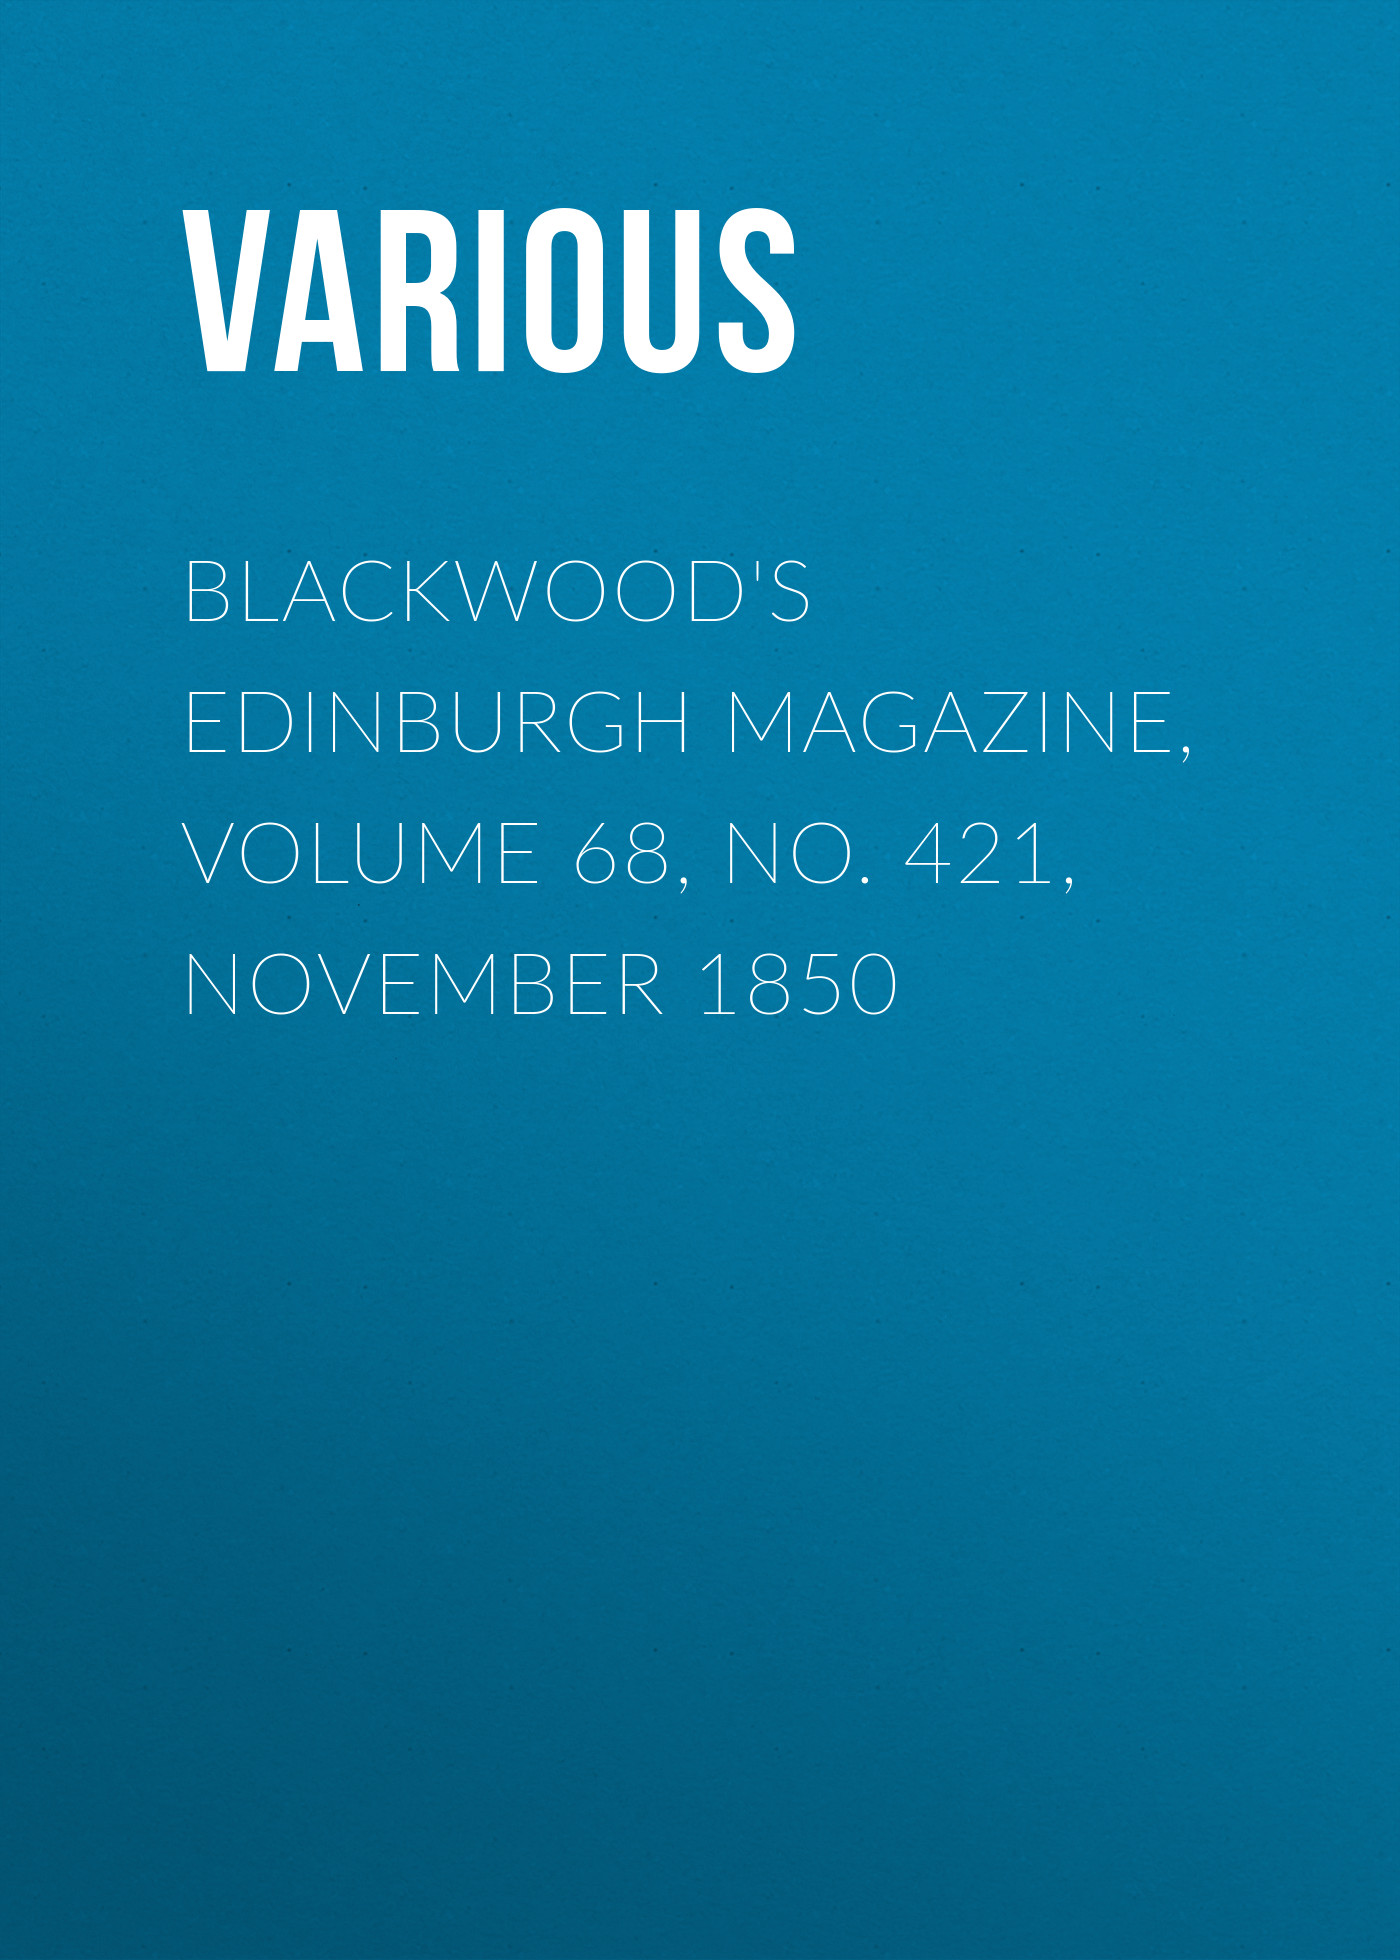 Various Blackwood's Edinburgh Magazine, Volume 68, No. 421, November 1850 цена